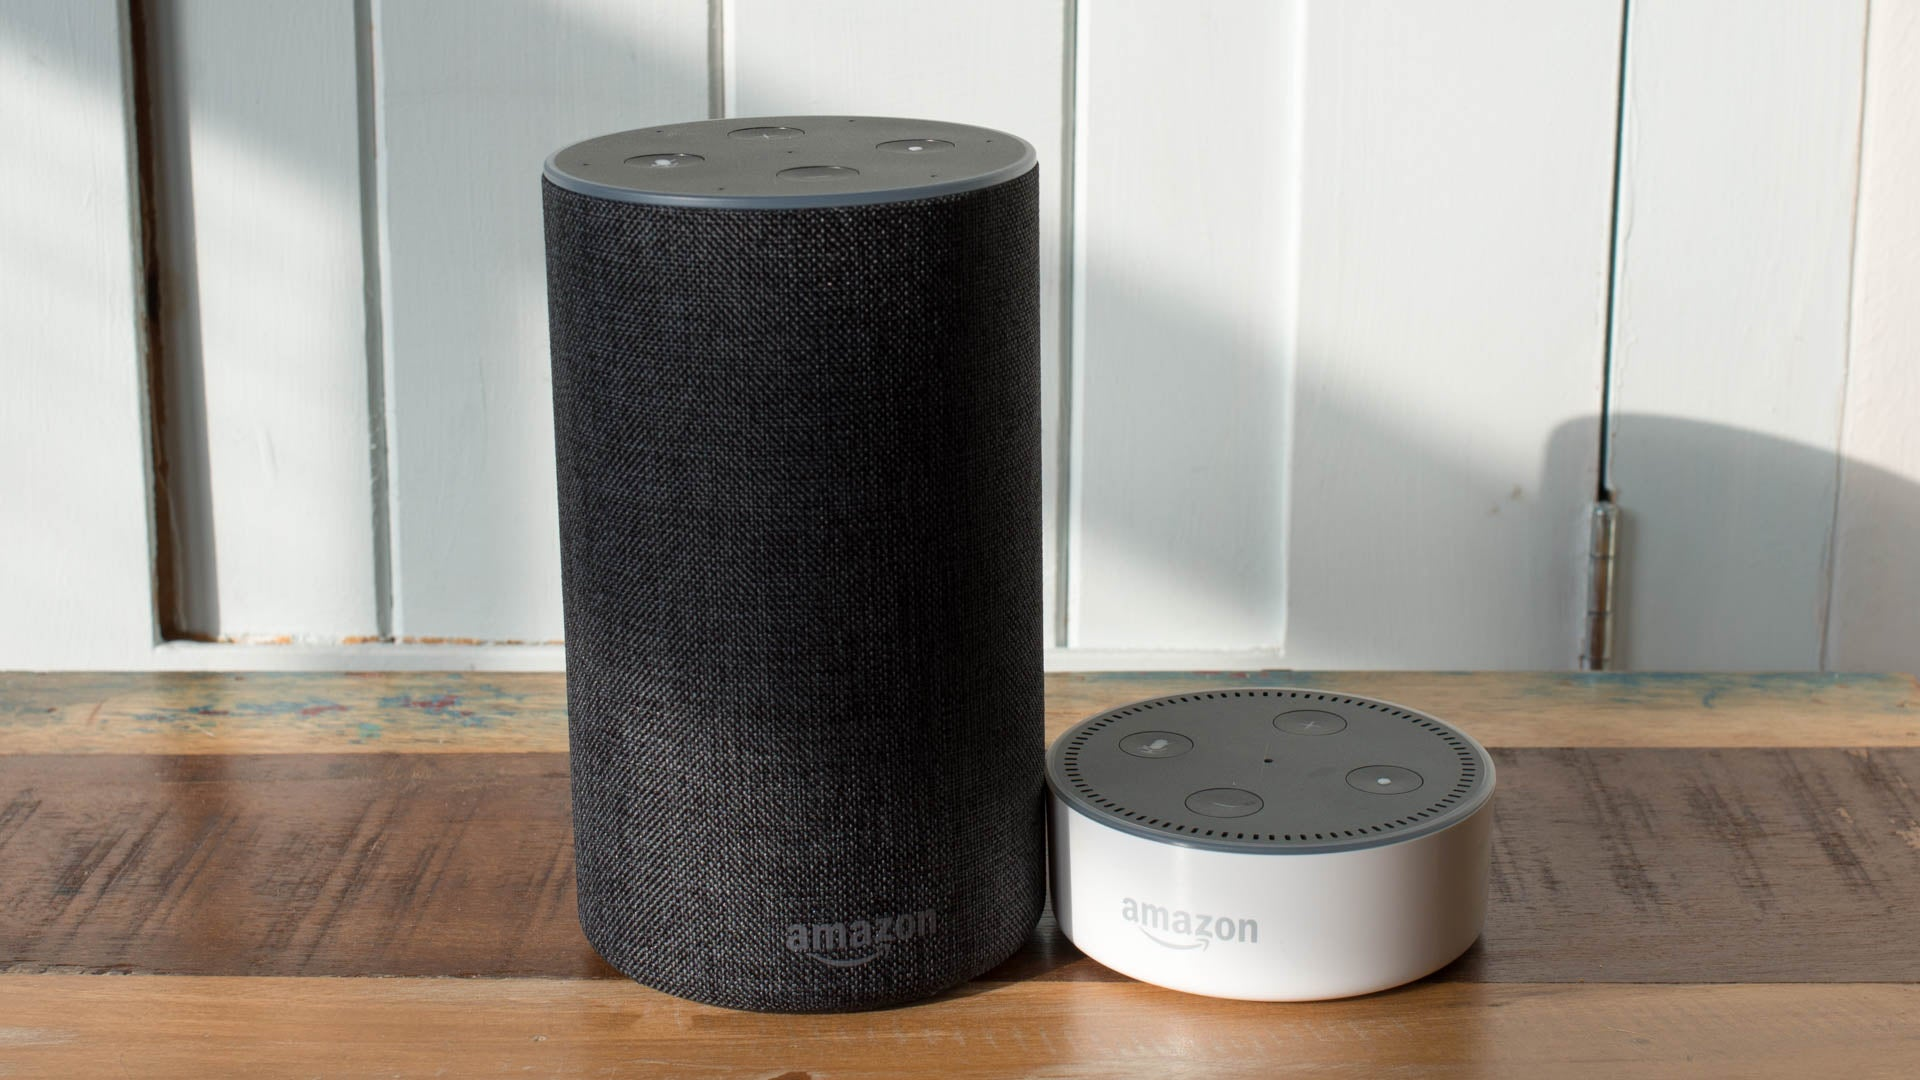 ' ' from the web at 'https://ksassets.timeincuk.net/wp/uploads/sites/54/2017/11/Amazon-Echo-2017-4-of-4.jpg'